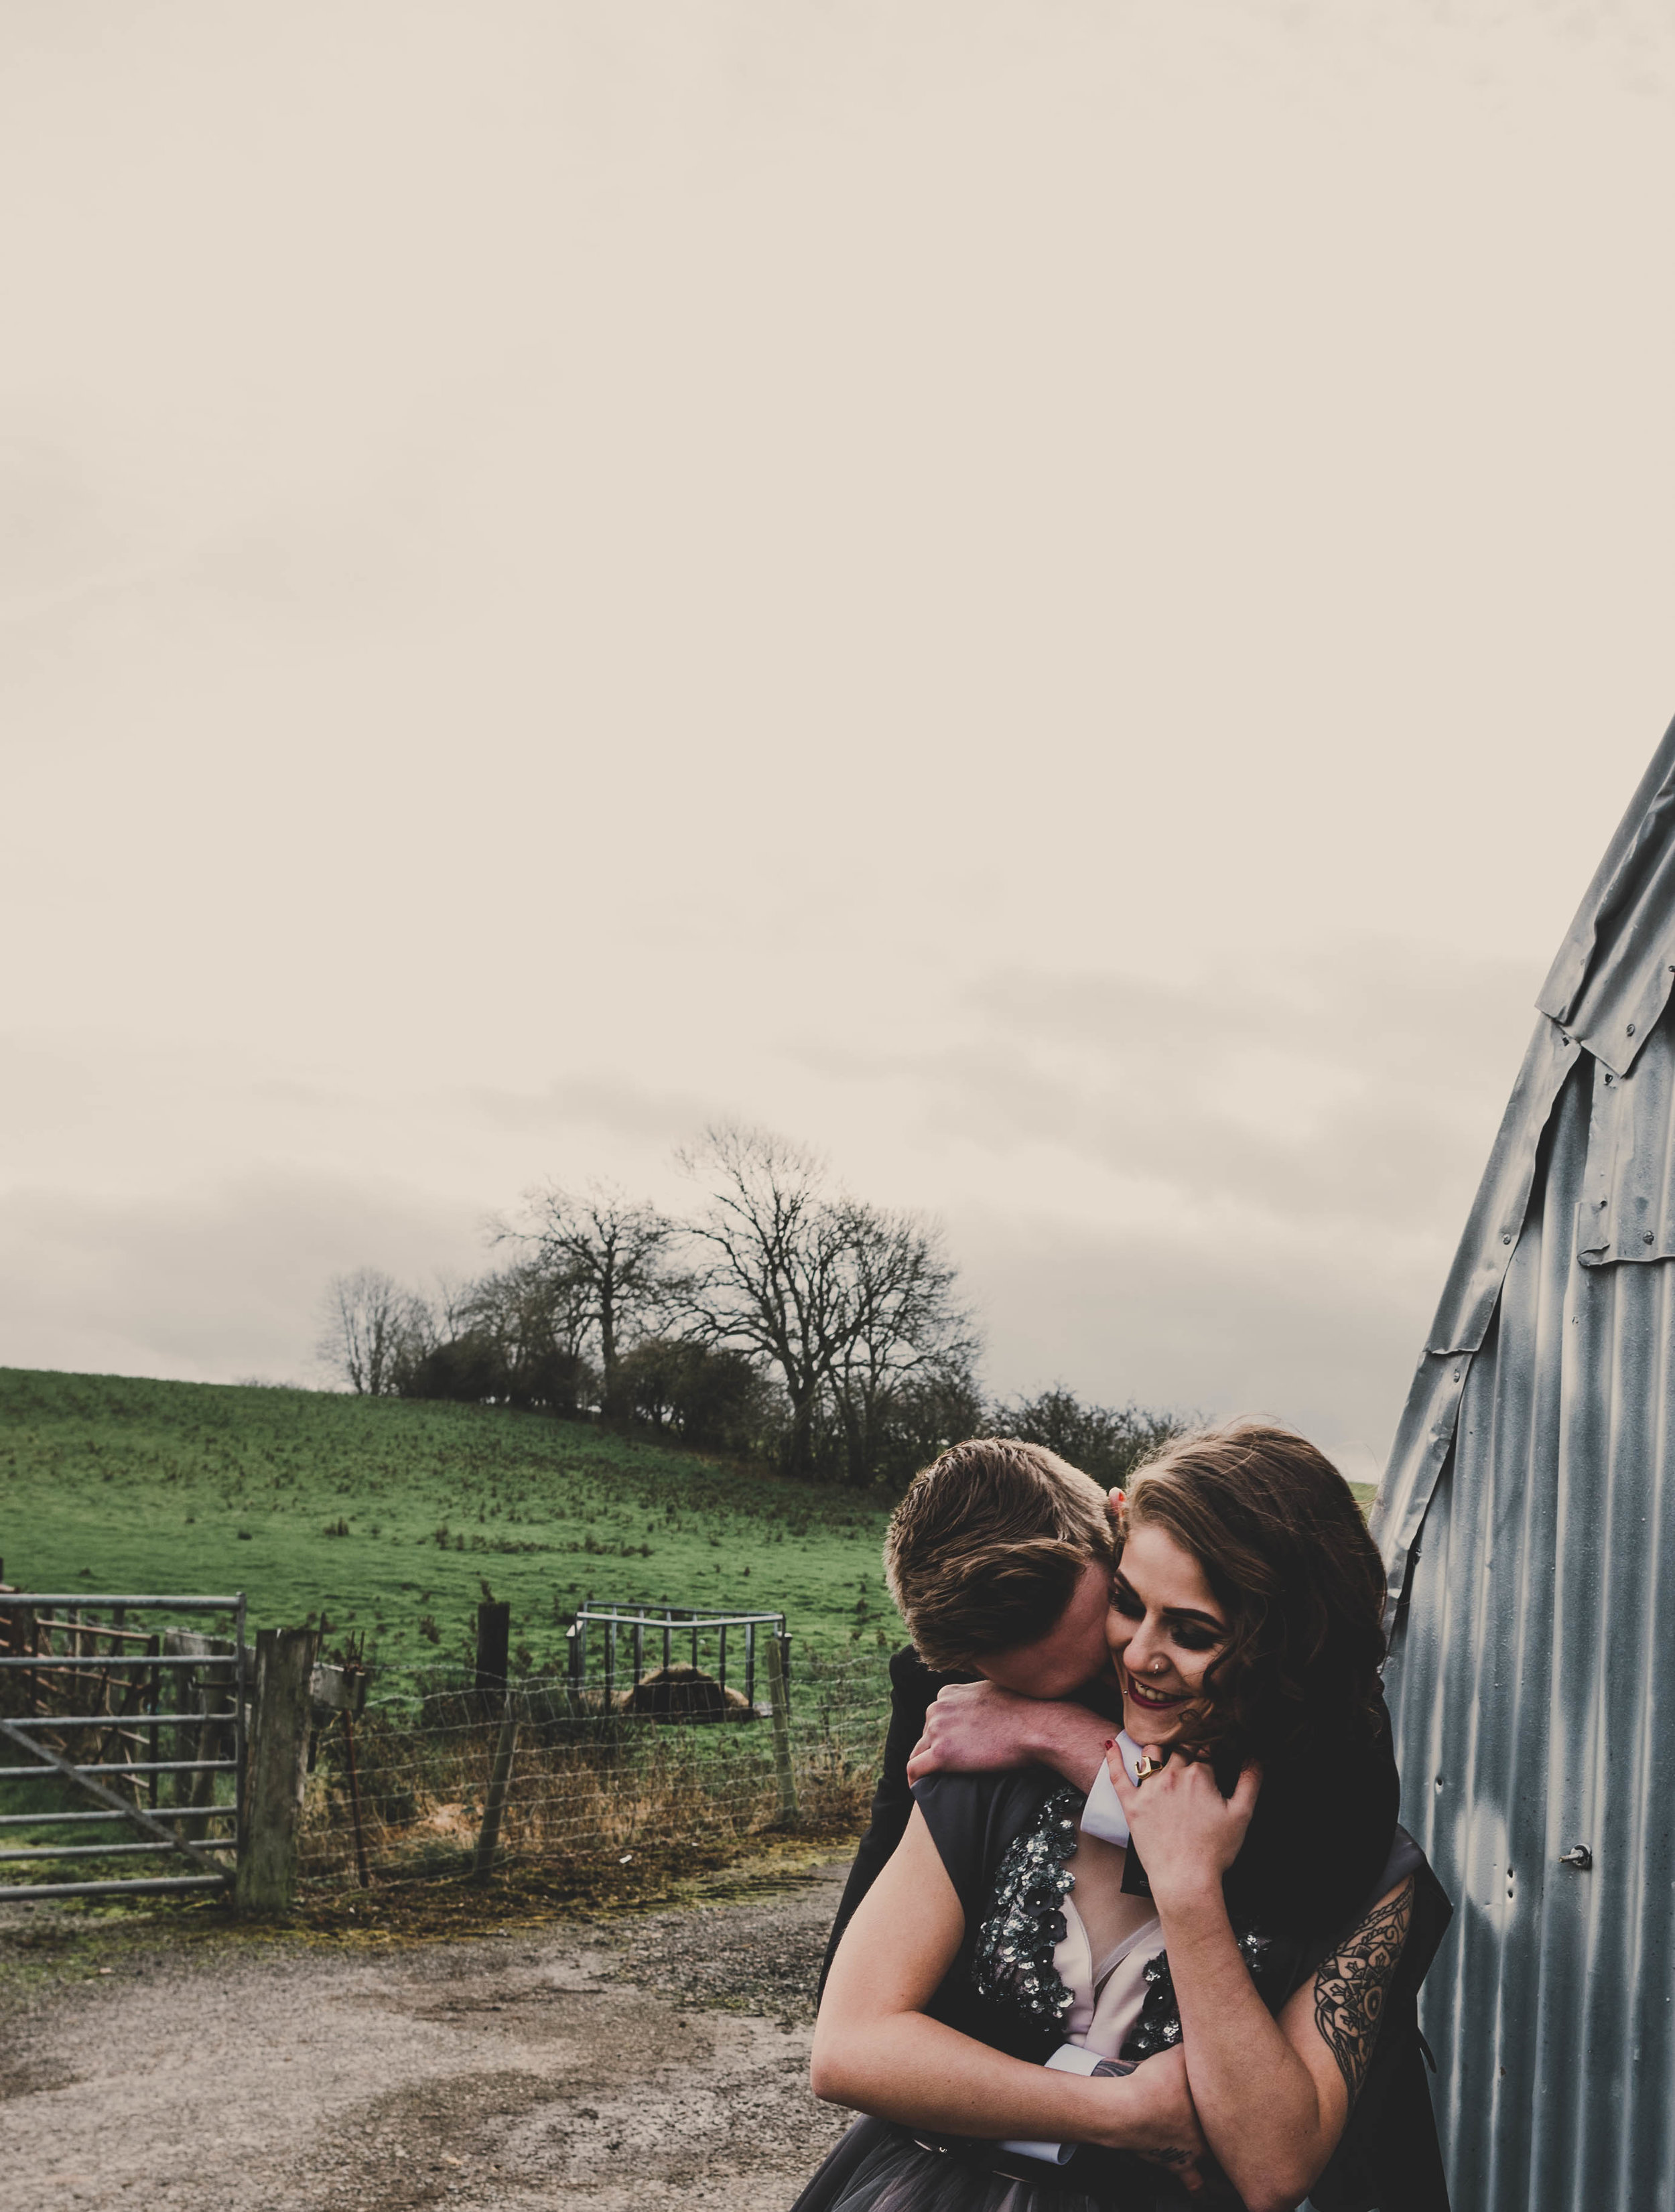 edgy-wedding-photography-in-lake-district (7).jpg